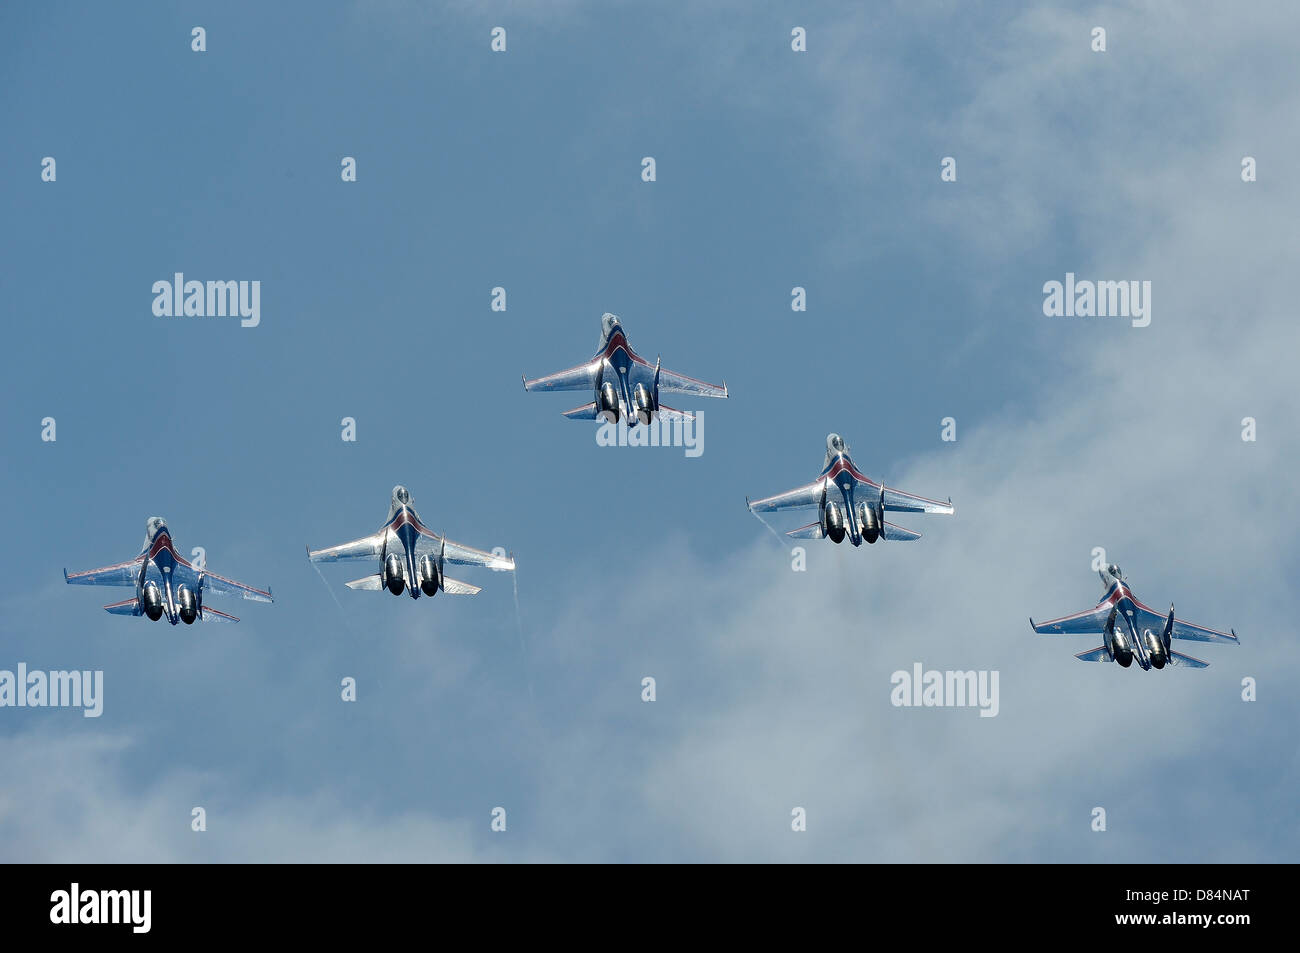 March 26, 2013 - Sukhoi Su-27 Flanker aircraft of the Russian Knights aerobatic team fly over Langkawi, Malaysia. - Stock Image